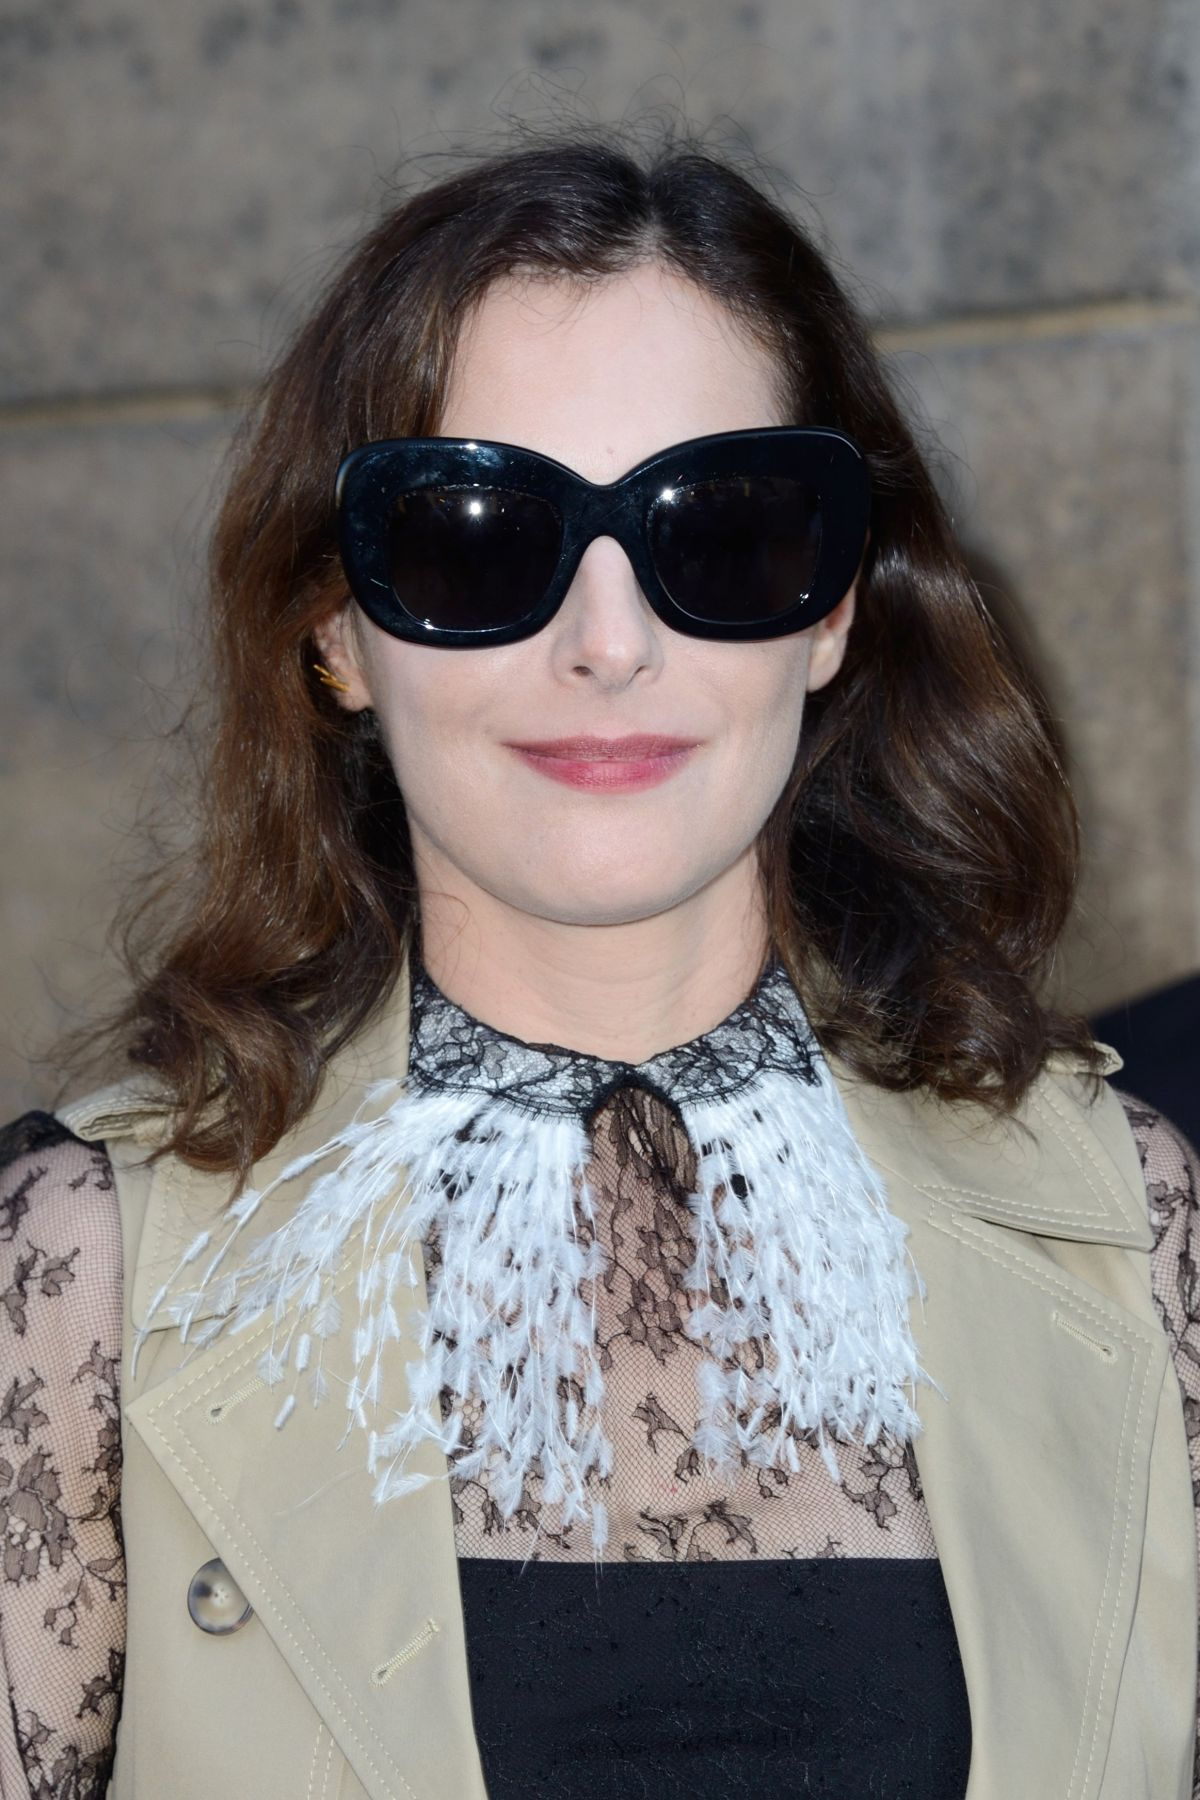 AMIRA CASAR at Christian Dior Show at Haute Couture Fashion Week in Paris 07/03/2017